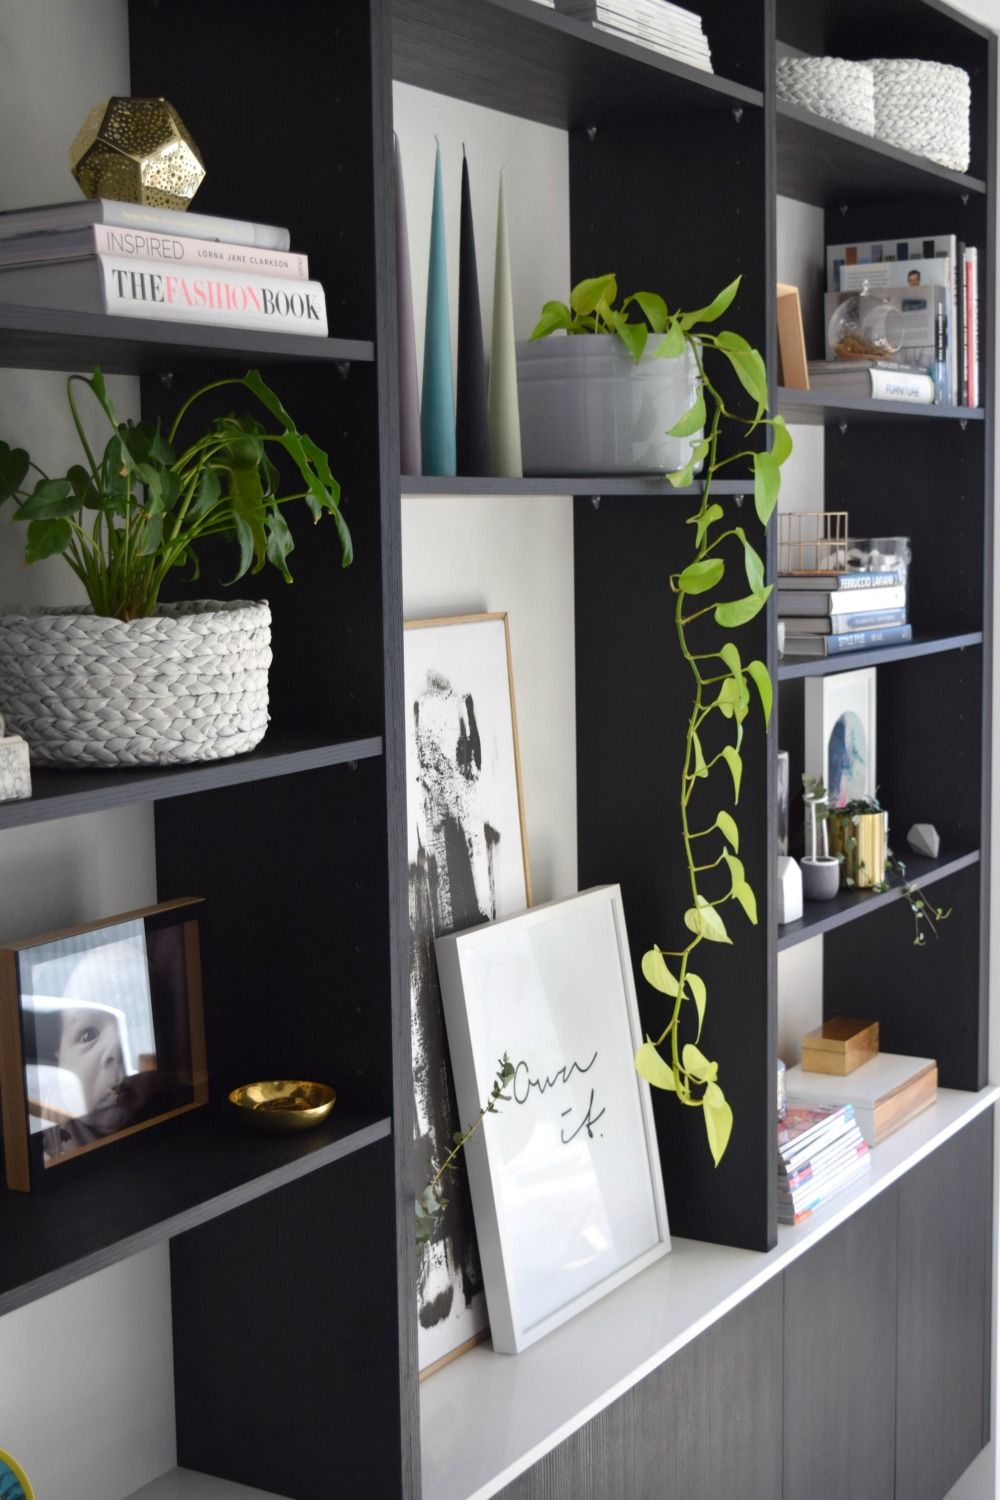 Styling A Bookshelf Shelf Styling Tips And Tricks L Style Curator